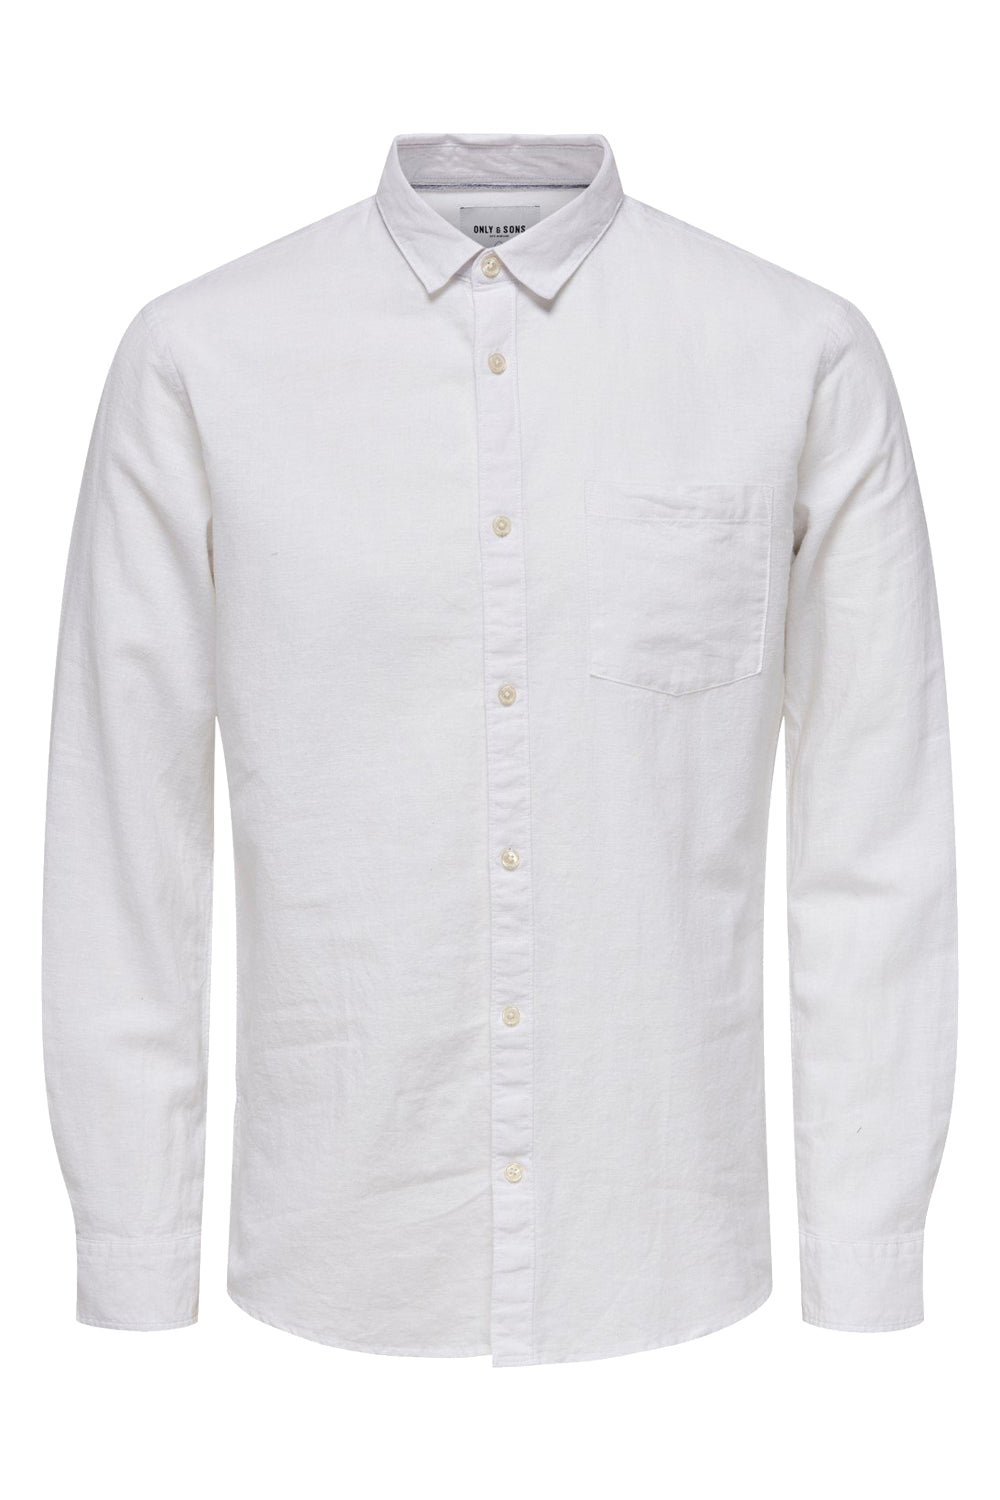 Only & Sons - Cadien LS Solid Linen Shirt